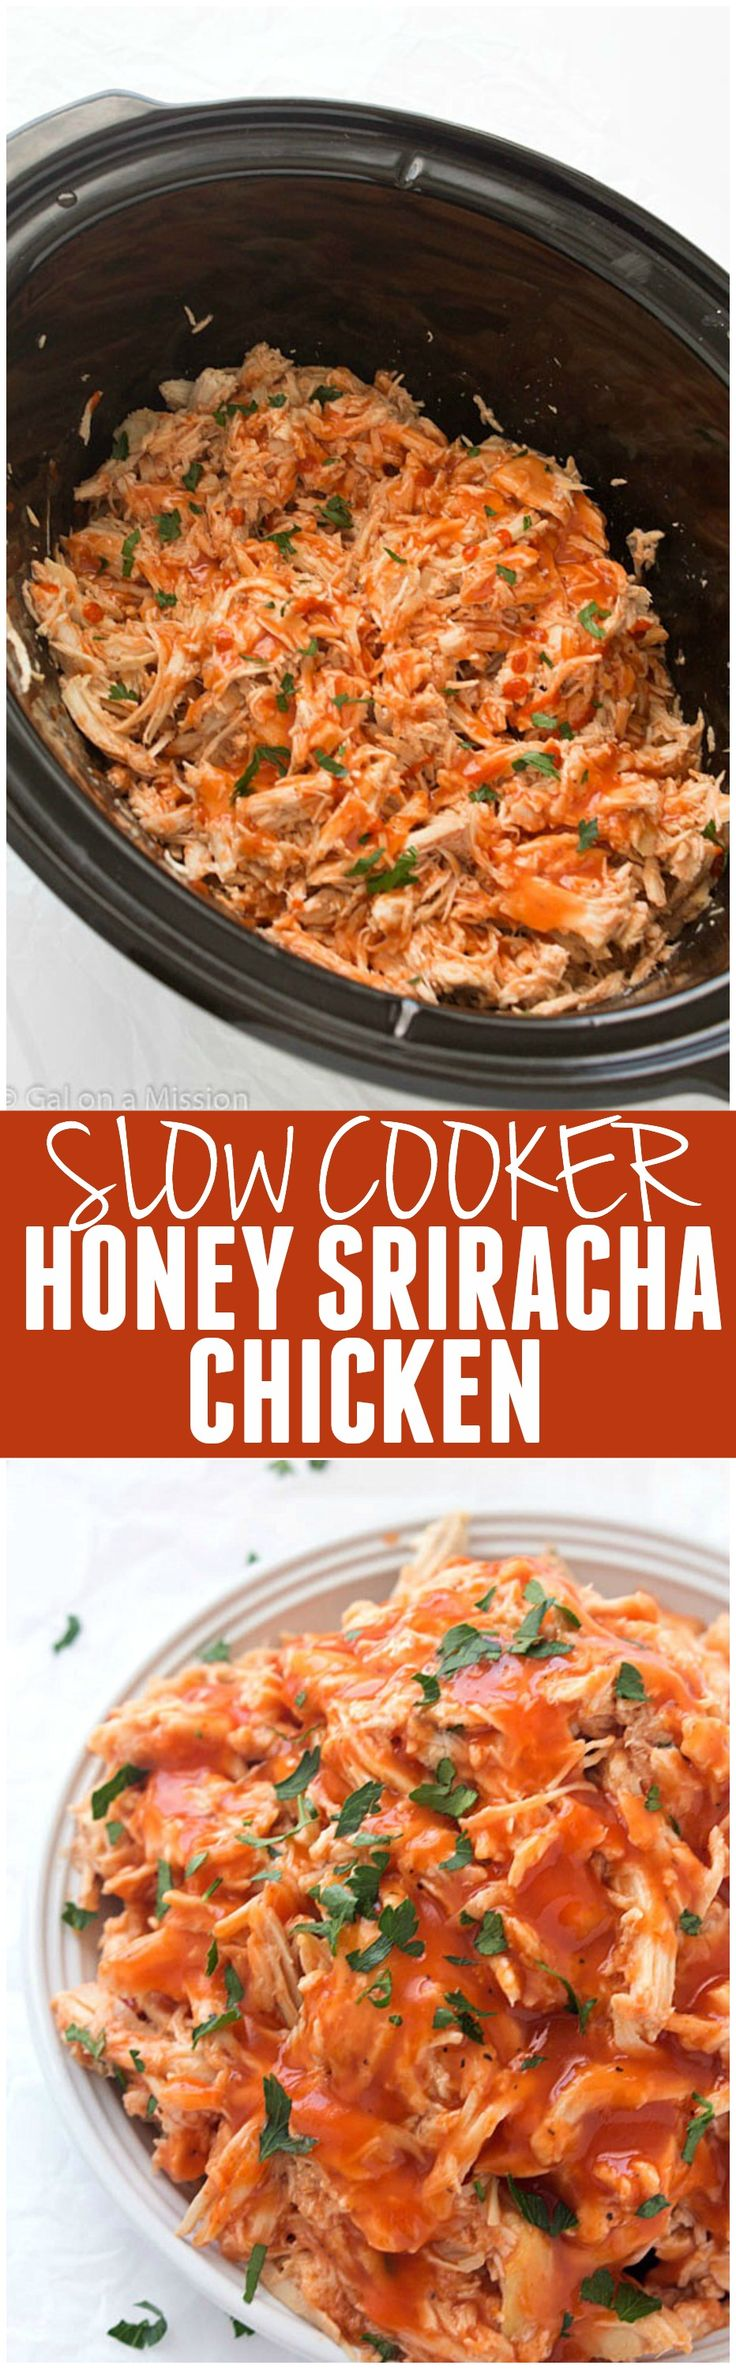 This Slow Cooker Honey Sriracha Chicken is an awesome balance of sweet and spice and the flavor is out of this world!